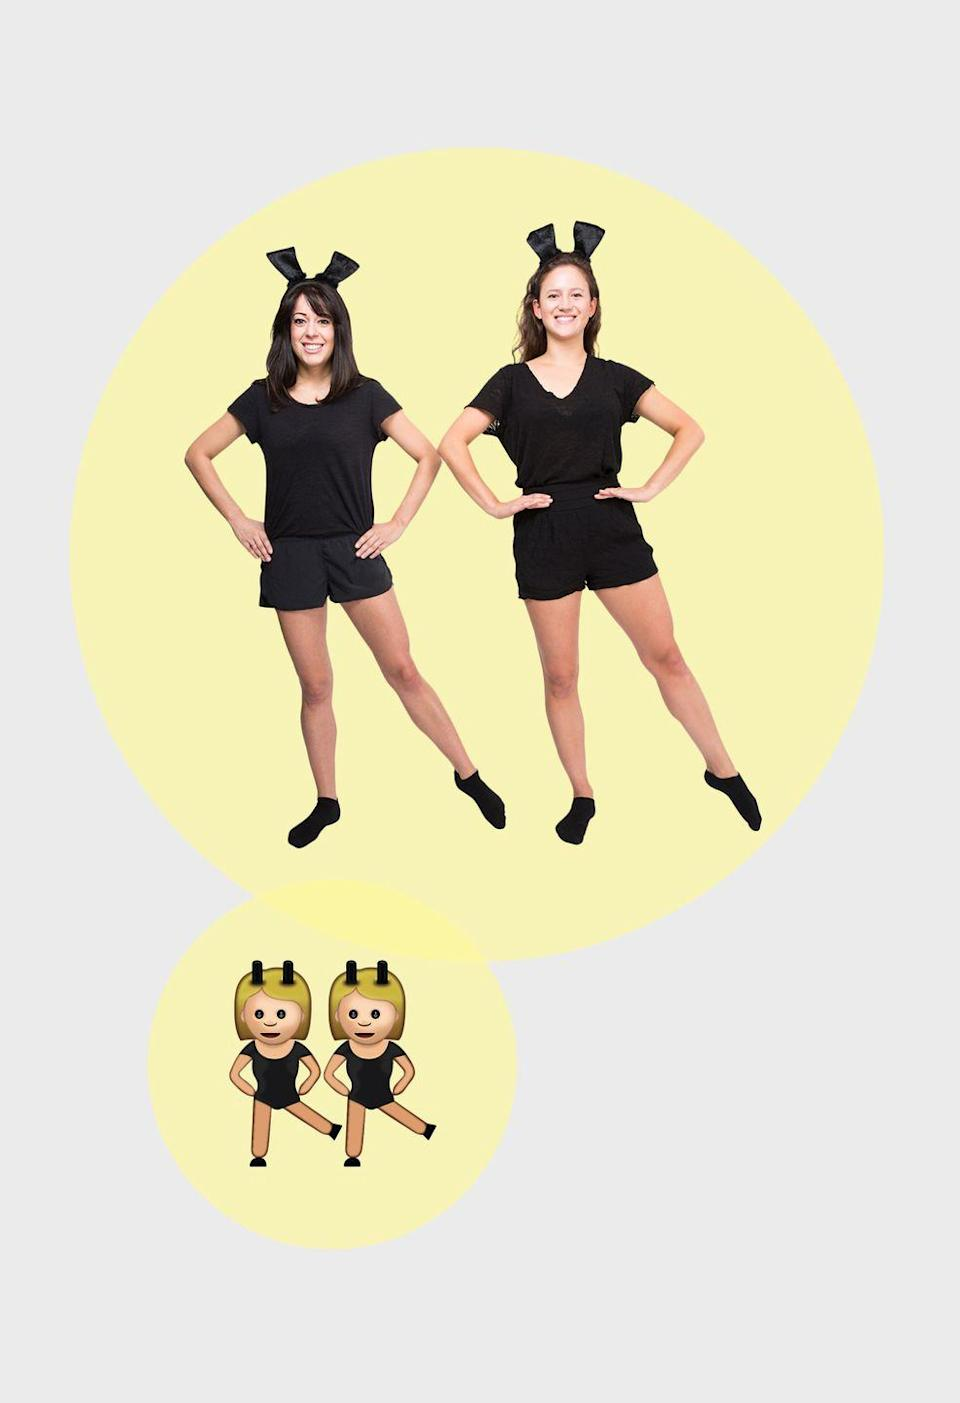 """<p>For a matching costume inspired by your most-used emojis, you need a pair of black tees, black shorts, black socks and black bunny ears that are either folded or cut to get a flat top. </p><p><strong>RELATED</strong>: <a href=""""https://www.goodhousekeeping.com/holidays/halloween-ideas/how-to/g3853/homemade-emoji-costumes/"""" rel=""""nofollow noopener"""" target=""""_blank"""" data-ylk=""""slk:32 Homemade Emoji Costume Ideas That Are Perfect for Halloween"""" class=""""link rapid-noclick-resp"""">32 Homemade Emoji Costume Ideas That Are Perfect for Halloween</a></p>"""